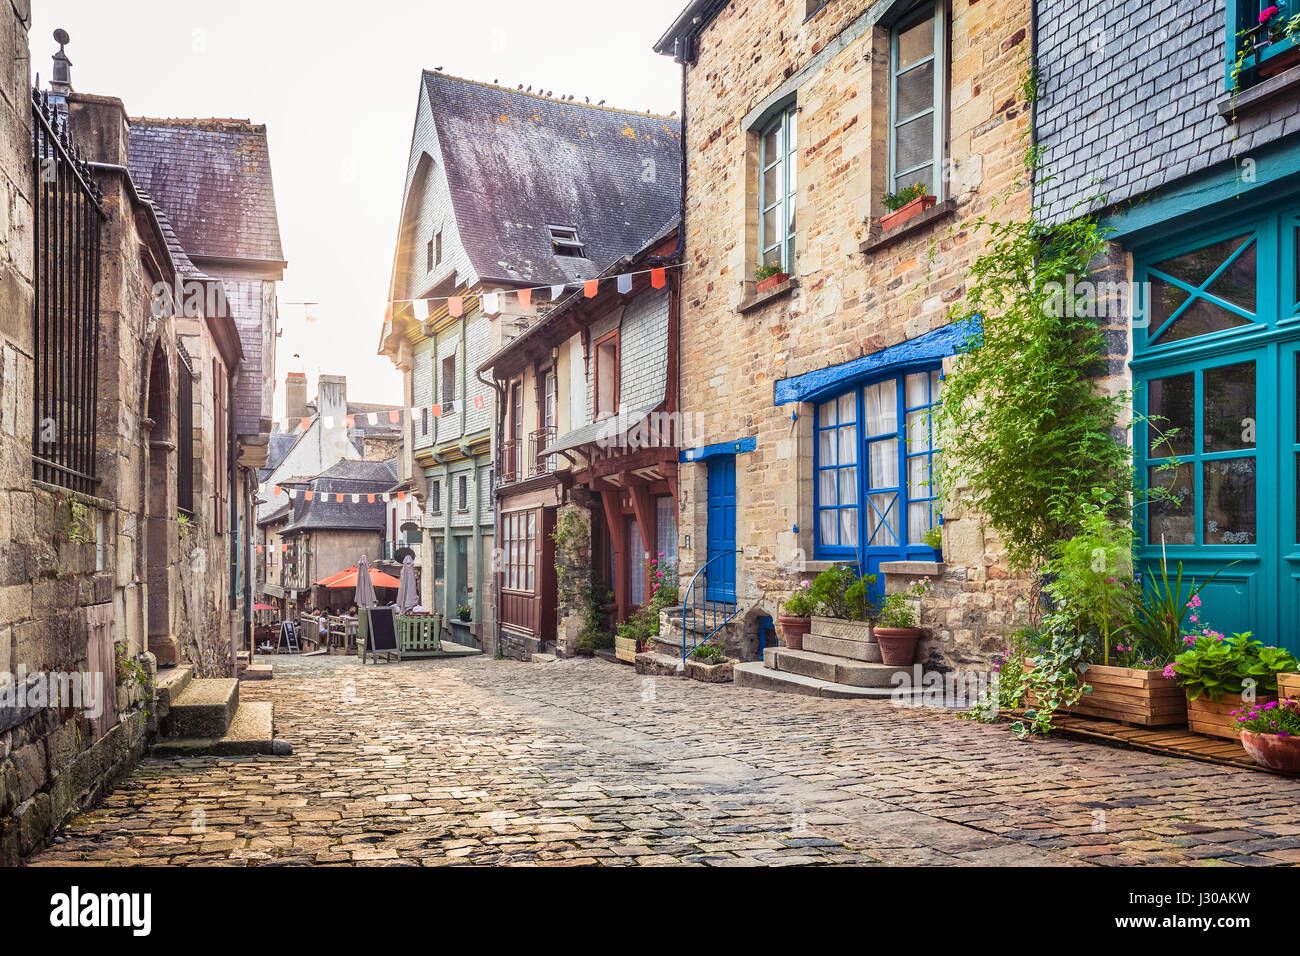 Panoramic View Of A Charming Street Scene In An Old Town